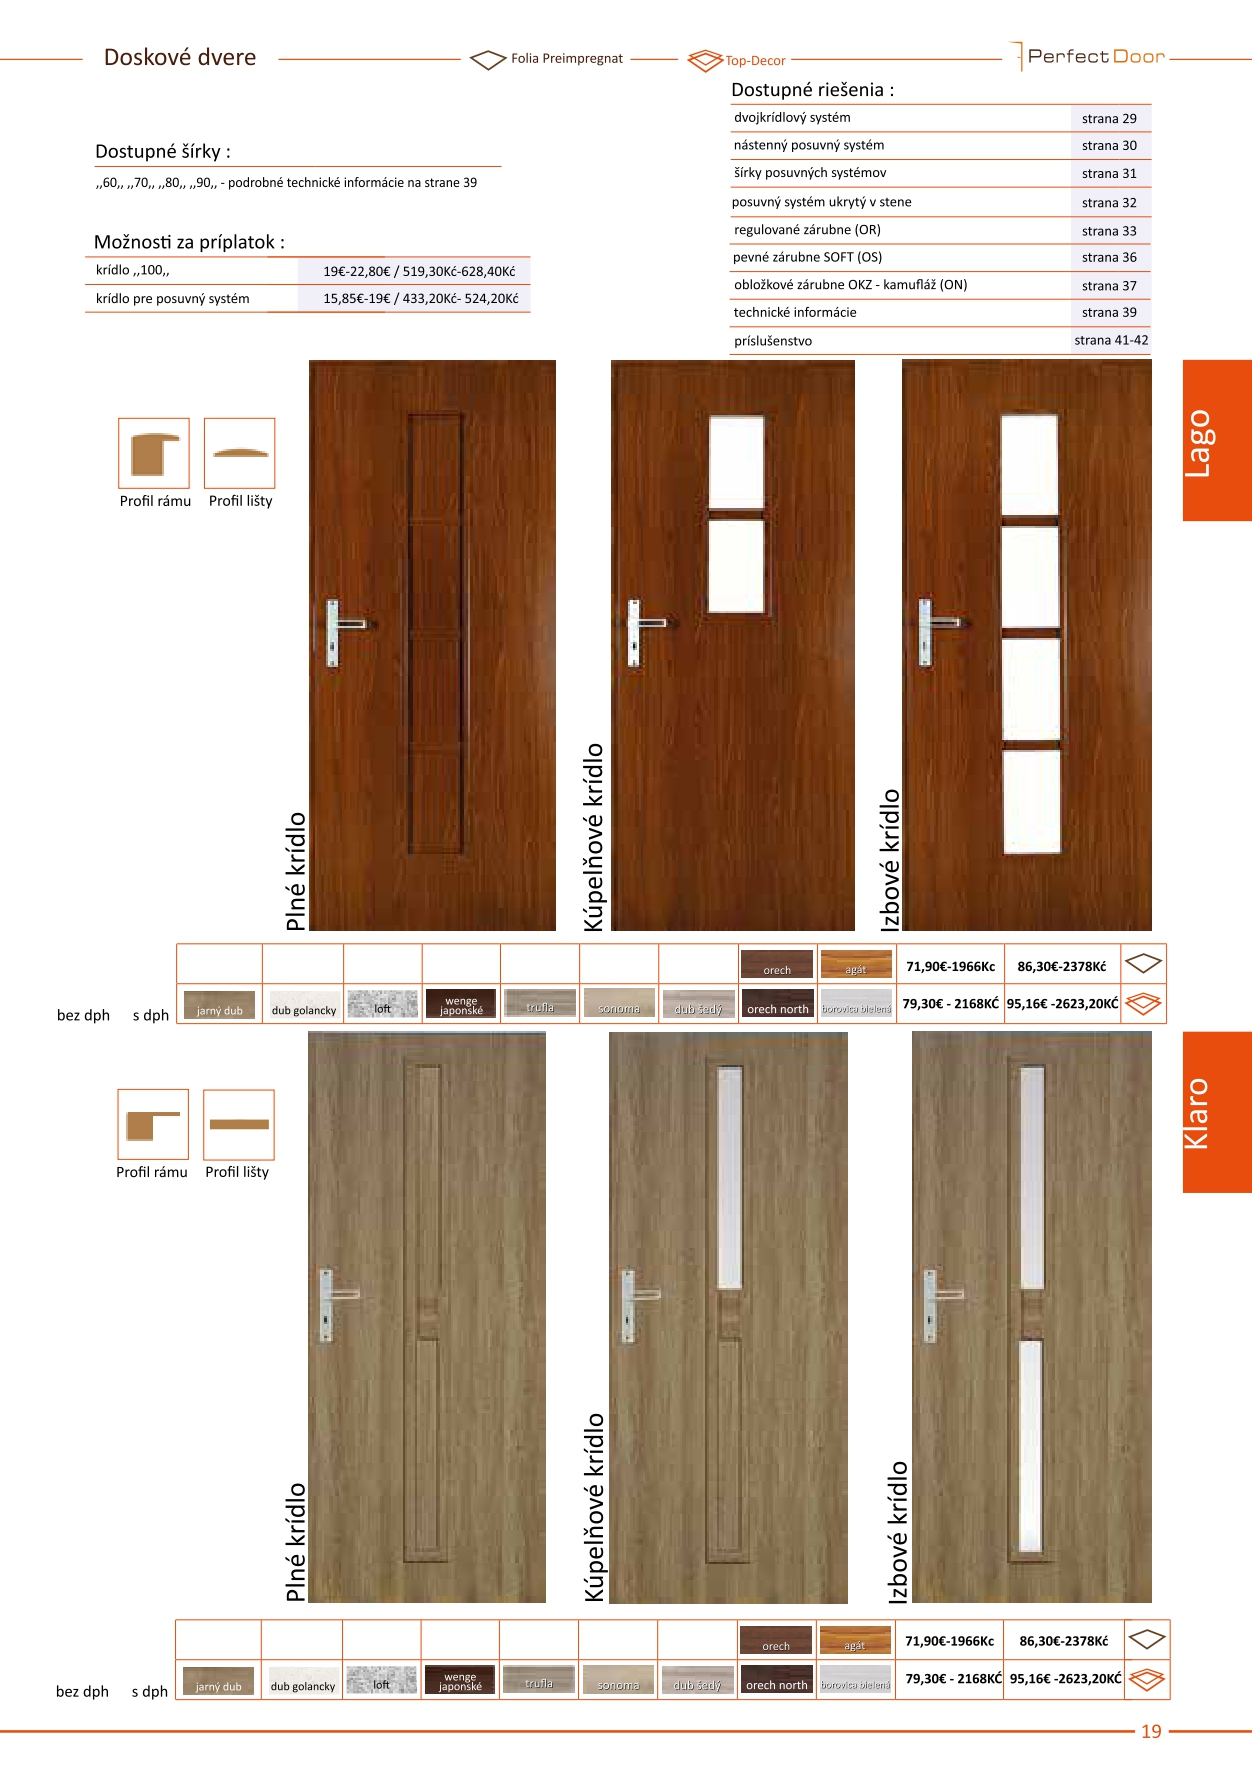 Perfectdoor katalog  1 2019 pages-to-jpg-0019